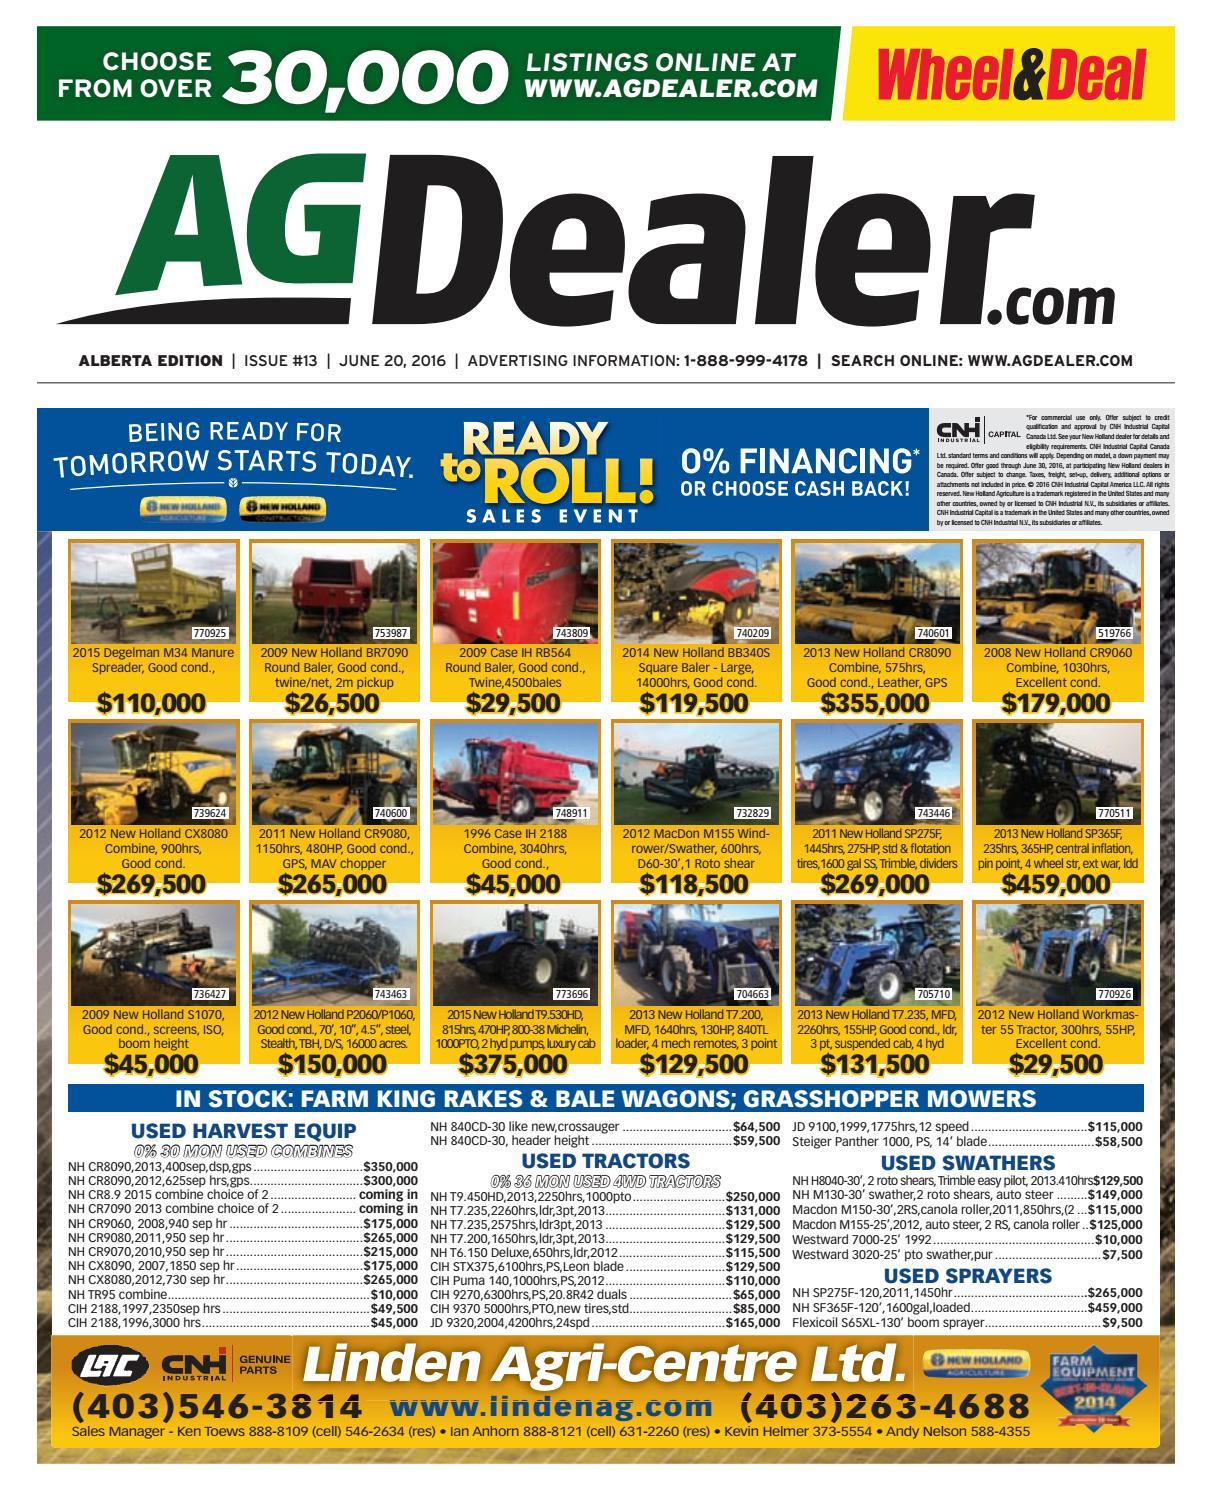 Wheel & Deal Alberta, June 20, 2016 by Farm Business Communications -  issuu